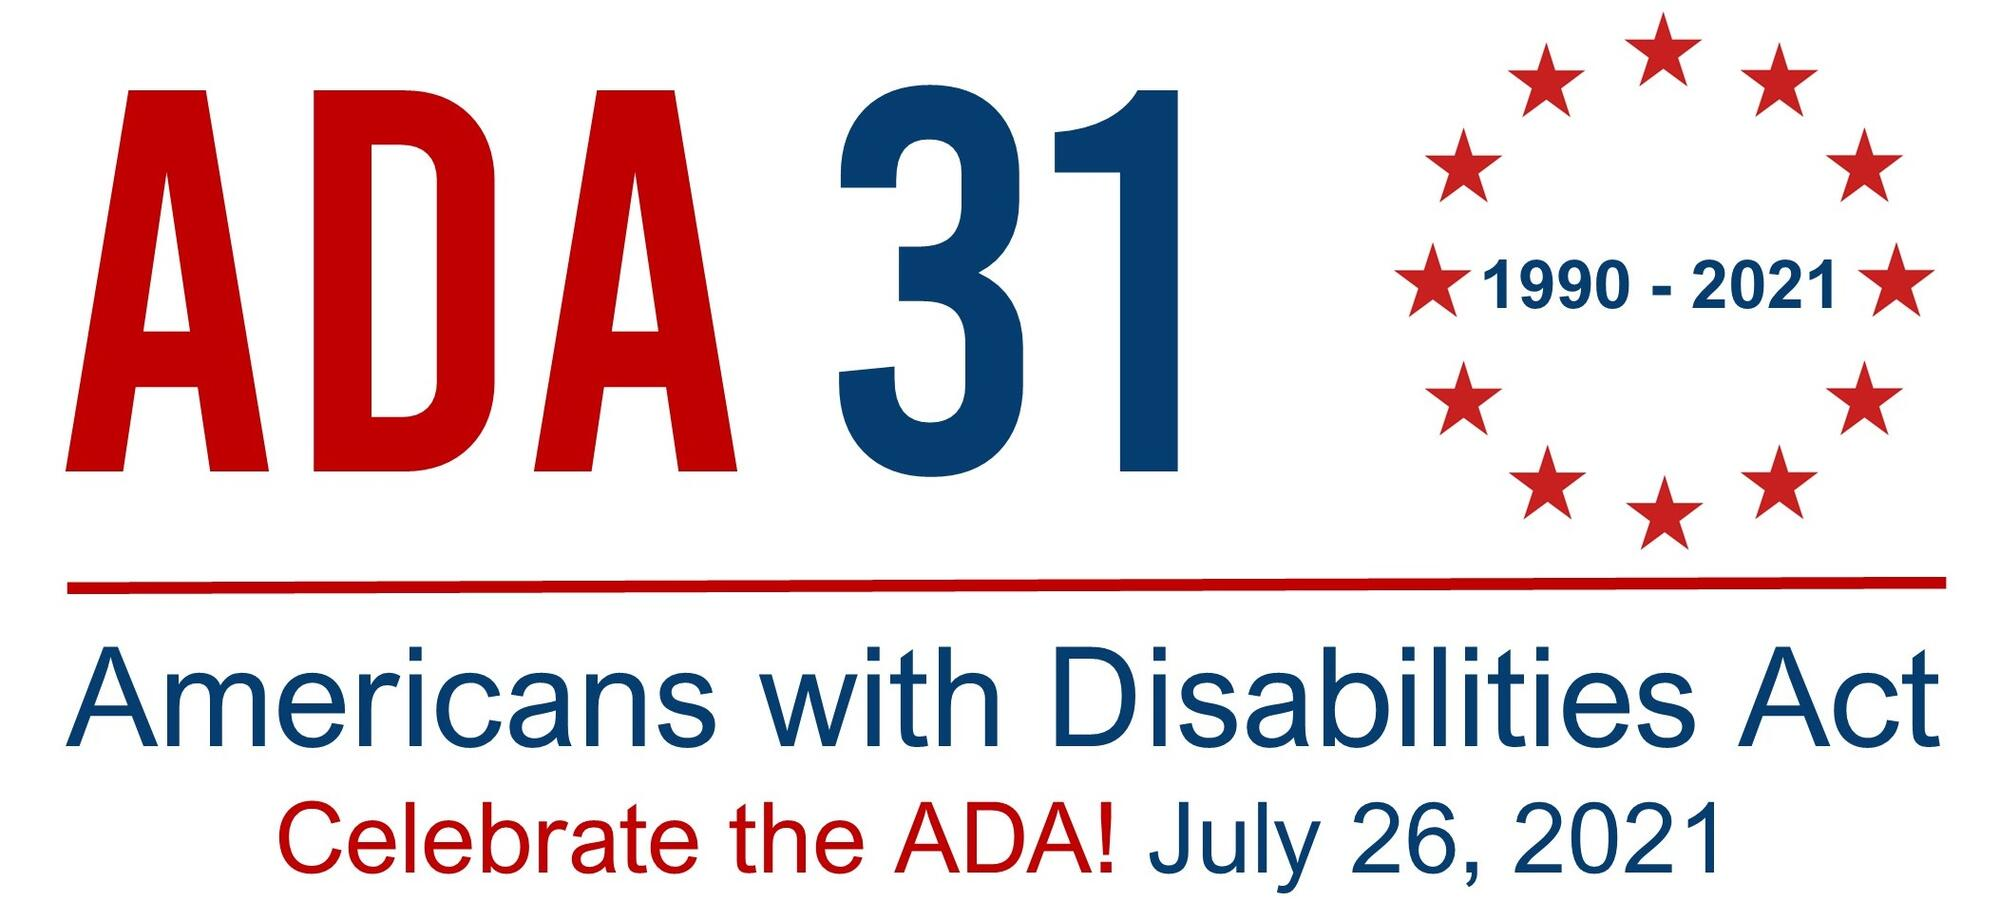 31st Anniversary of the Americans with Disabilities Act Panel